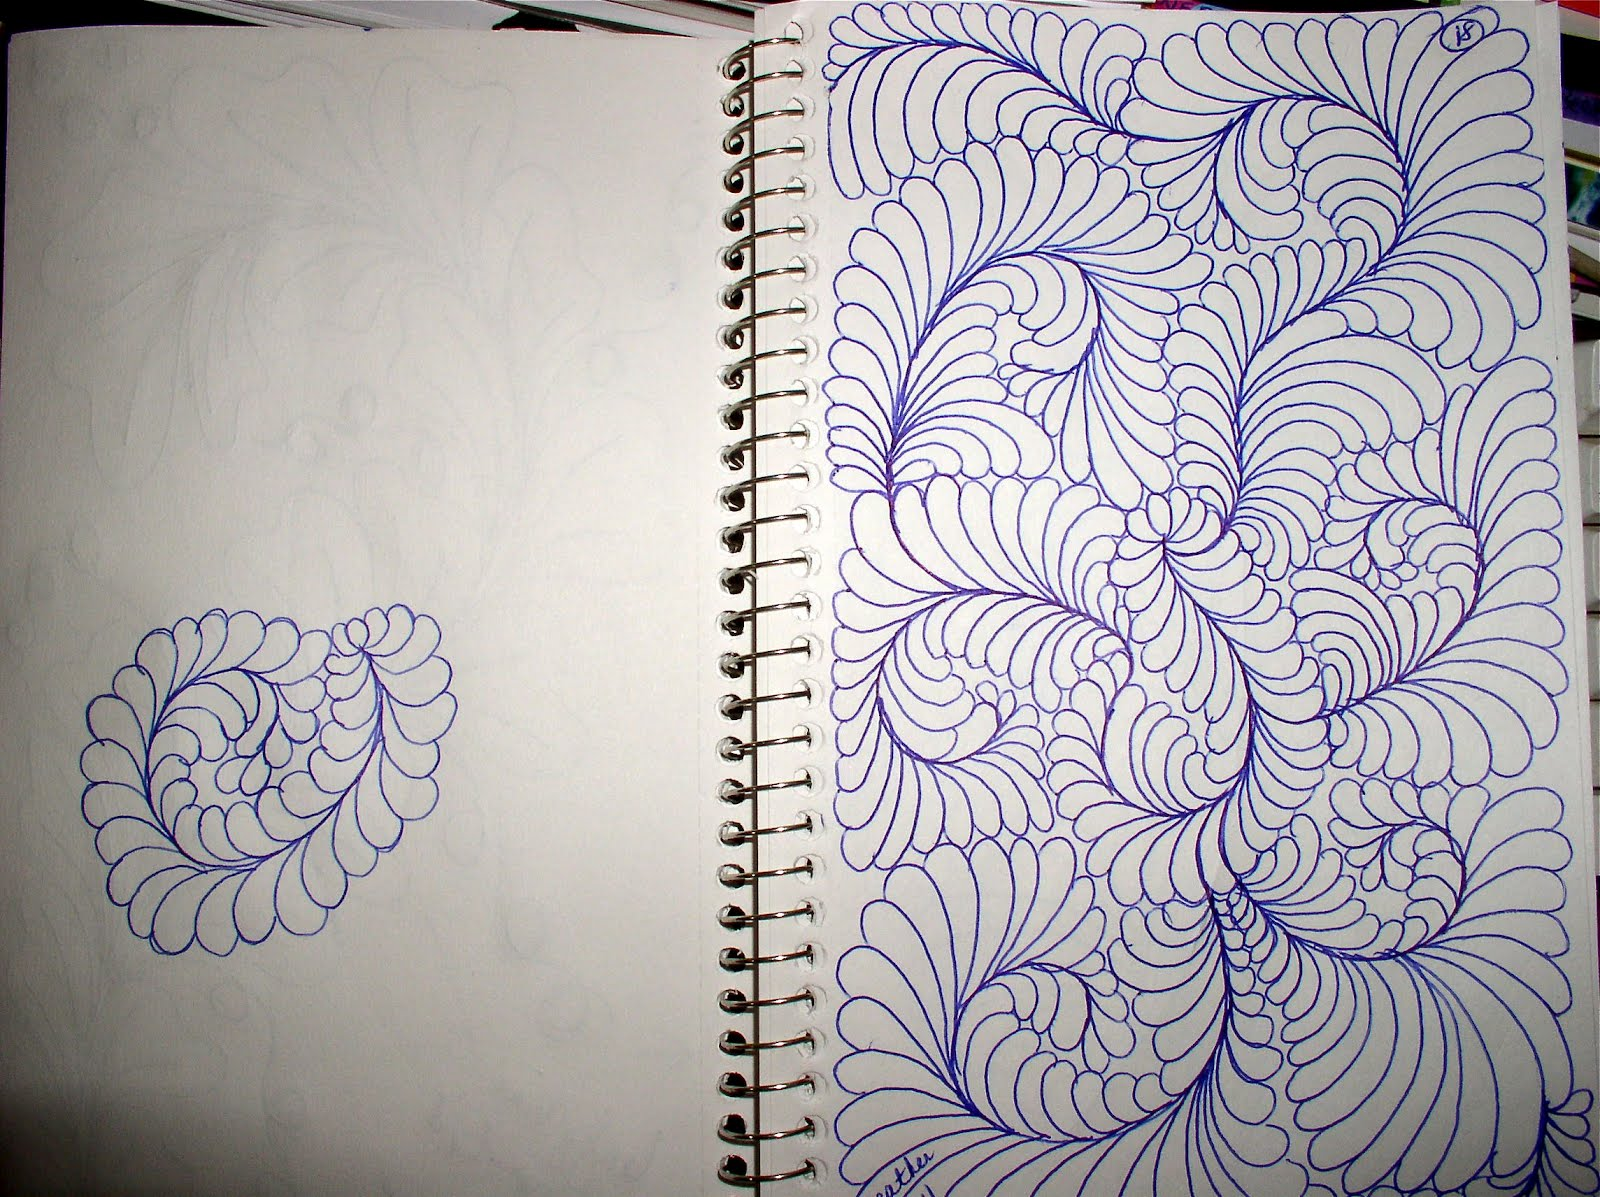 Designs On Paper Drawing at GetDrawings.com | Free for ...Easy Cool Designs To Draw On Paper